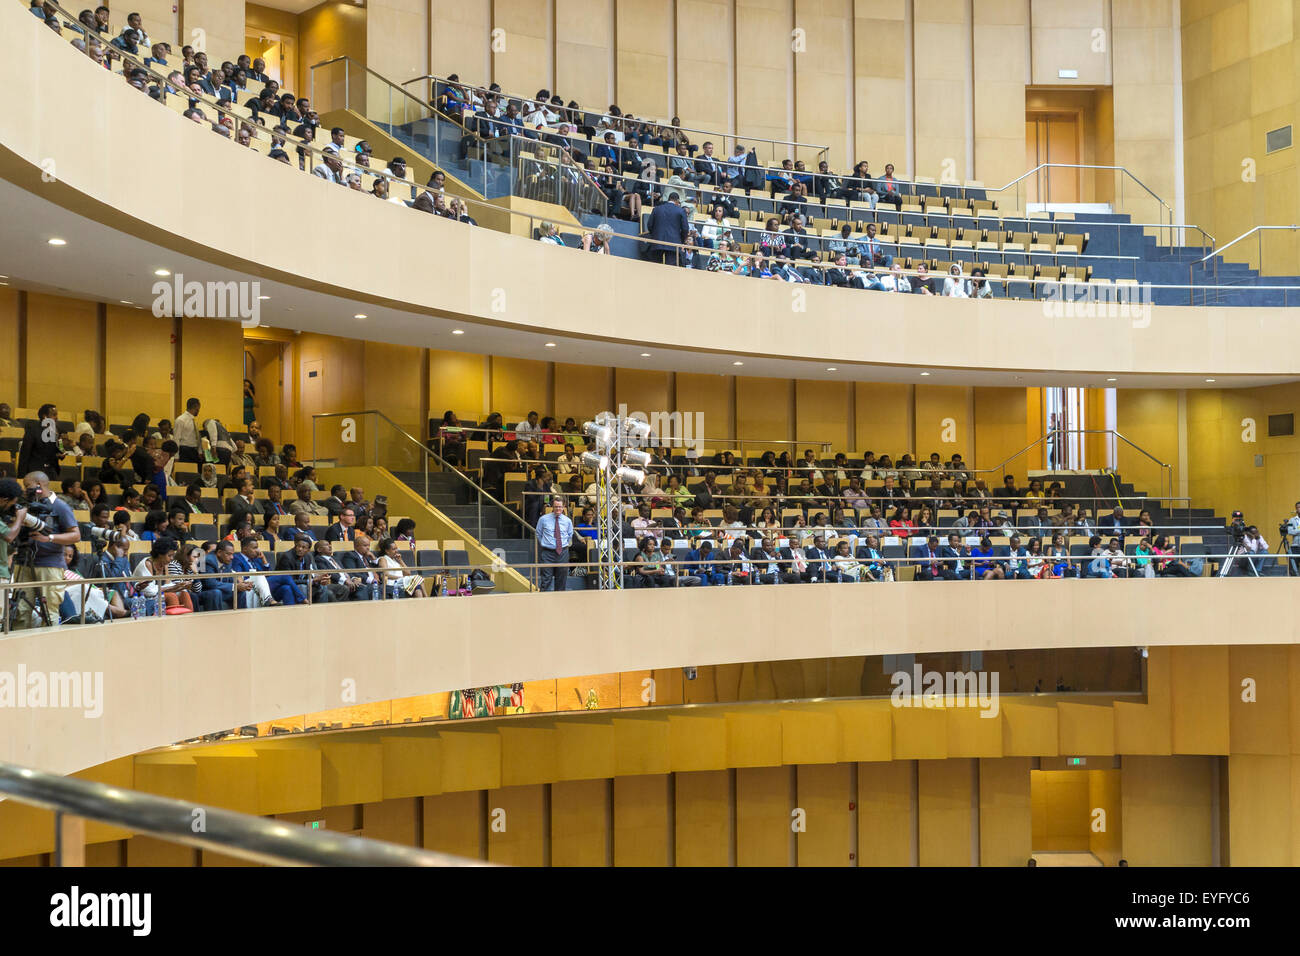 Addis Ababa, Ethiopia. 28th July, 2015. Nelson Mandela Hall of the AU Conference Centre was filled with a large - Stock Image